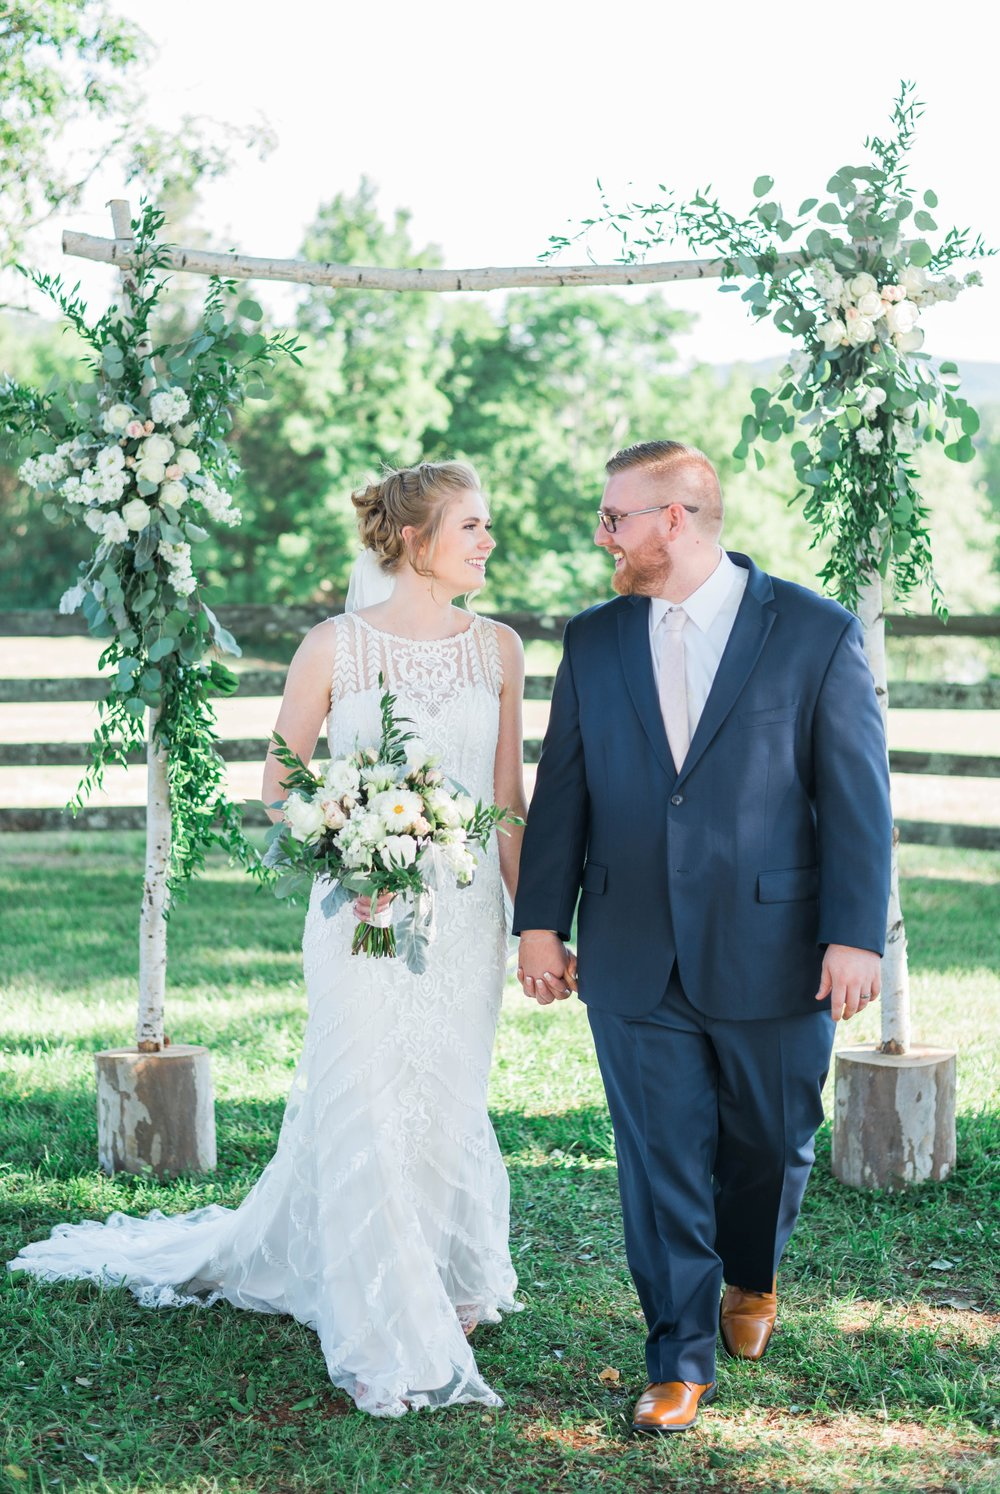 SorellaFarms_VirginiaWeddingPhotographer_BarnWedding_Lynchburgweddingphotographer_DanielleTyler 10.jpg